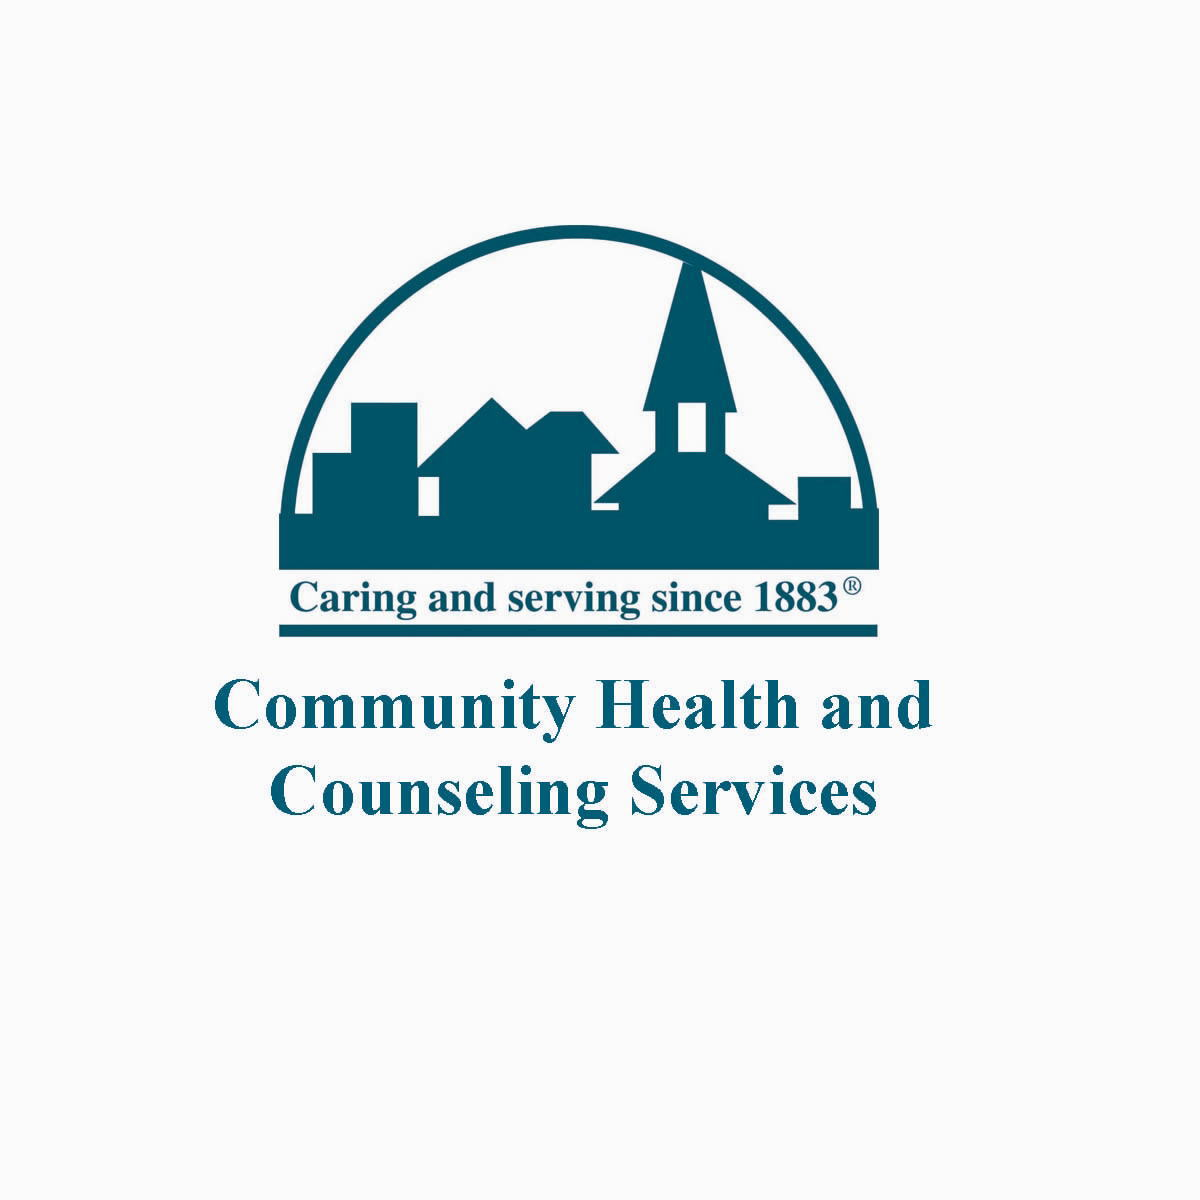 Community Health & Counseling Services